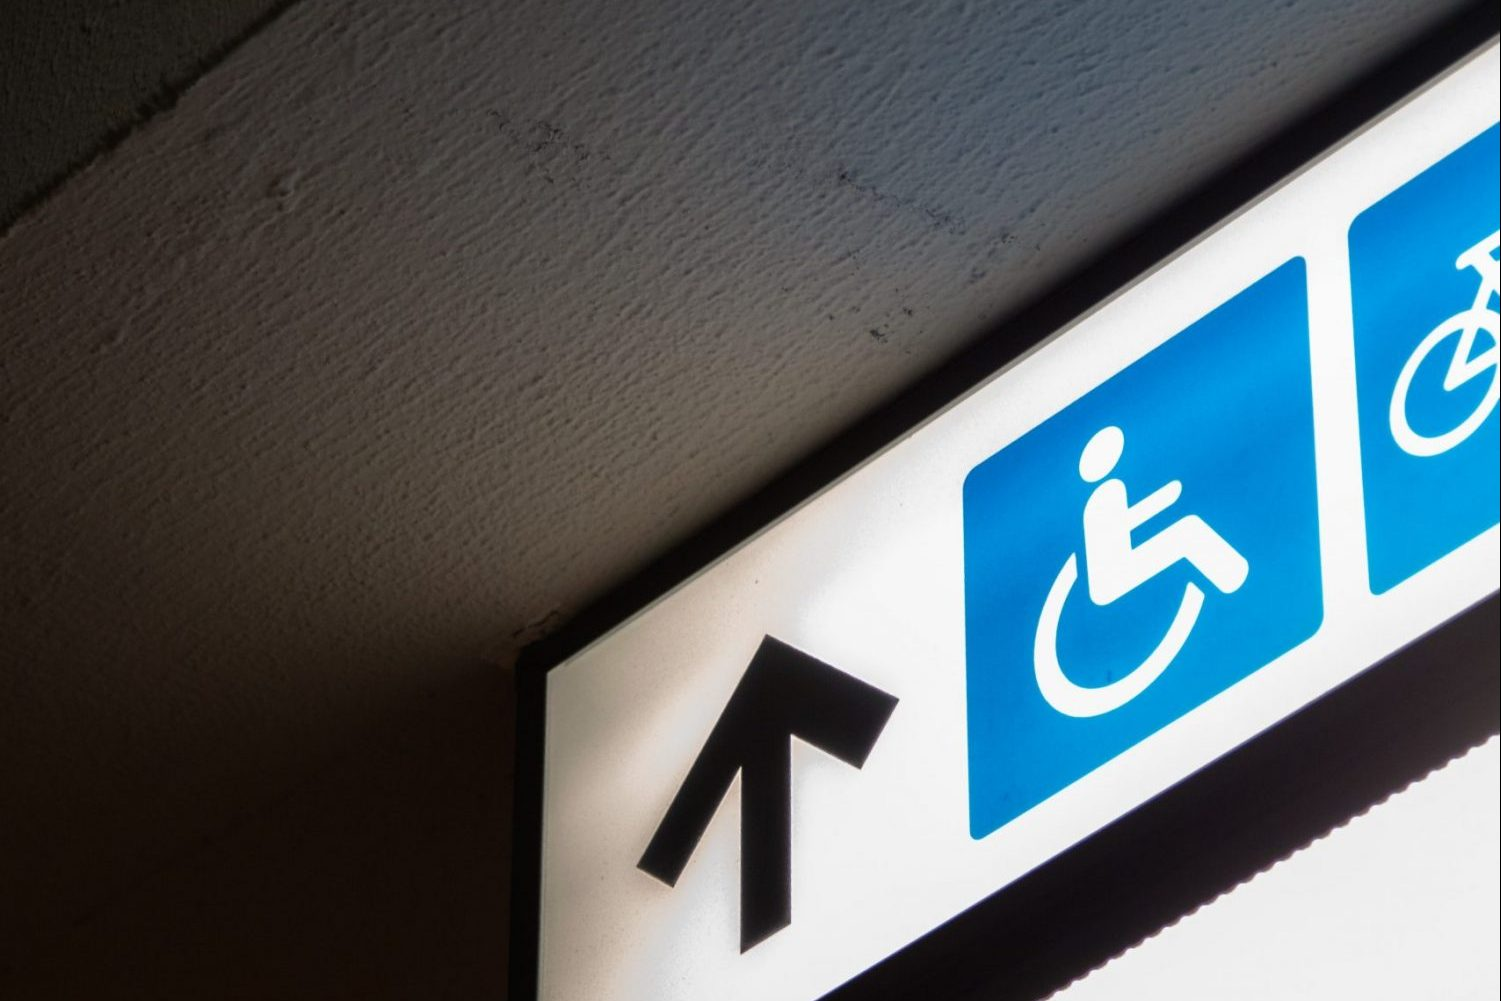 In article about disabled college students returning to campus, an image of an accessibility sign